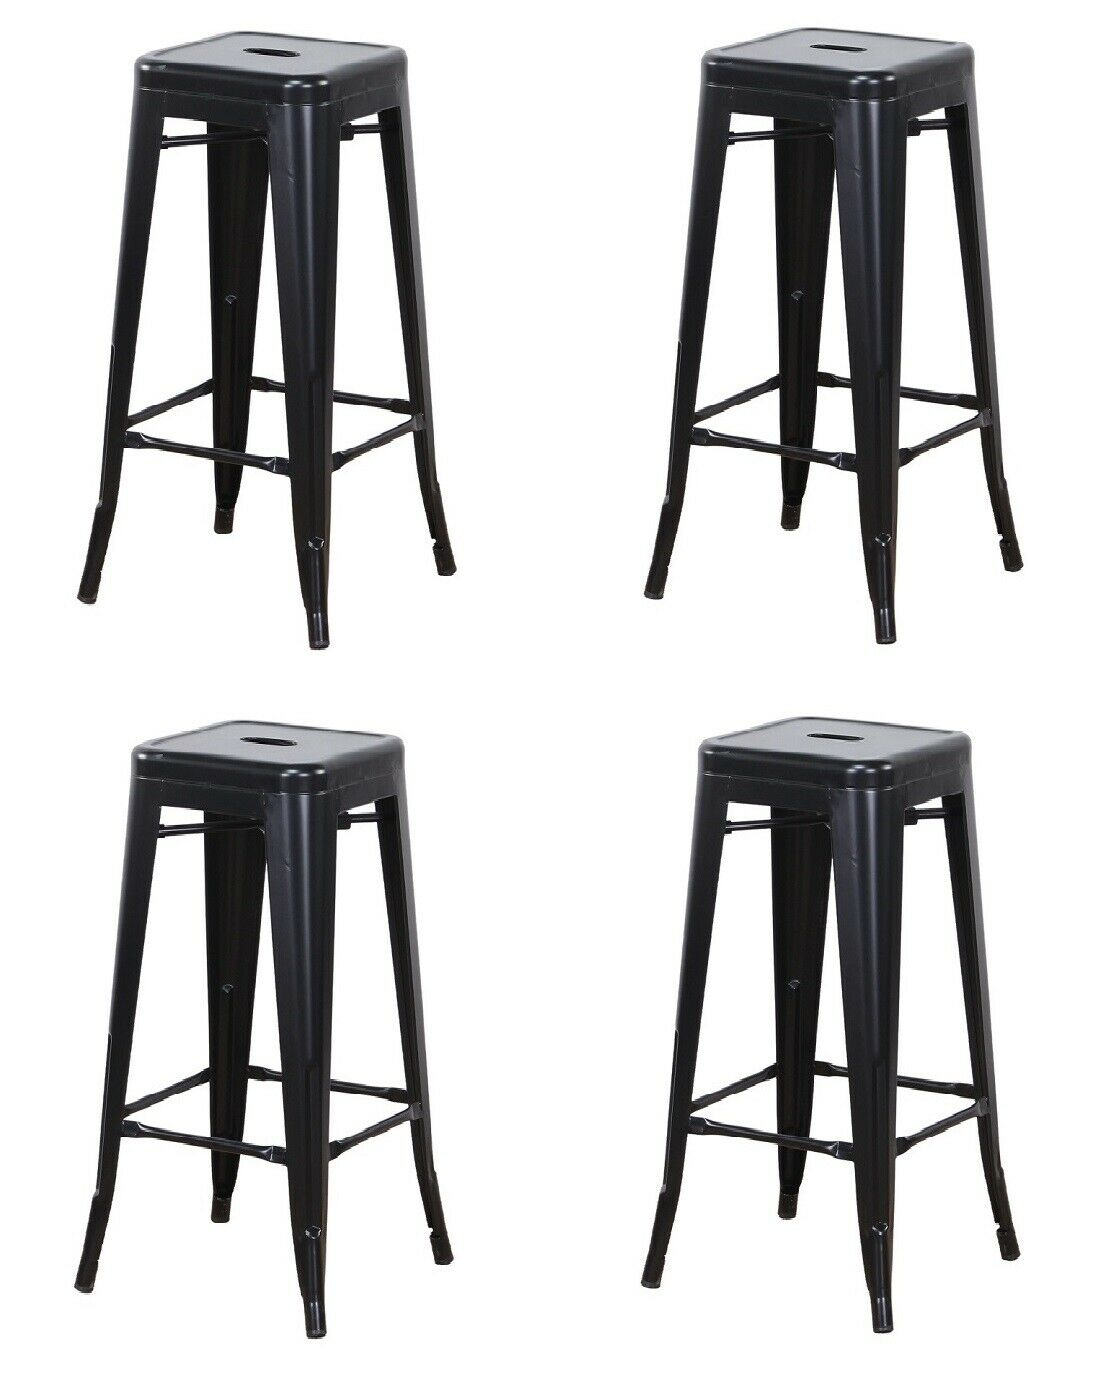 Set of 2 Rustic Vintage Retro Metal Leather Industrial Style Seating Pub Chair High Back Seating for Breakfast Bar Stool Kitchen Island Counter Height Wisfor Bar Stools